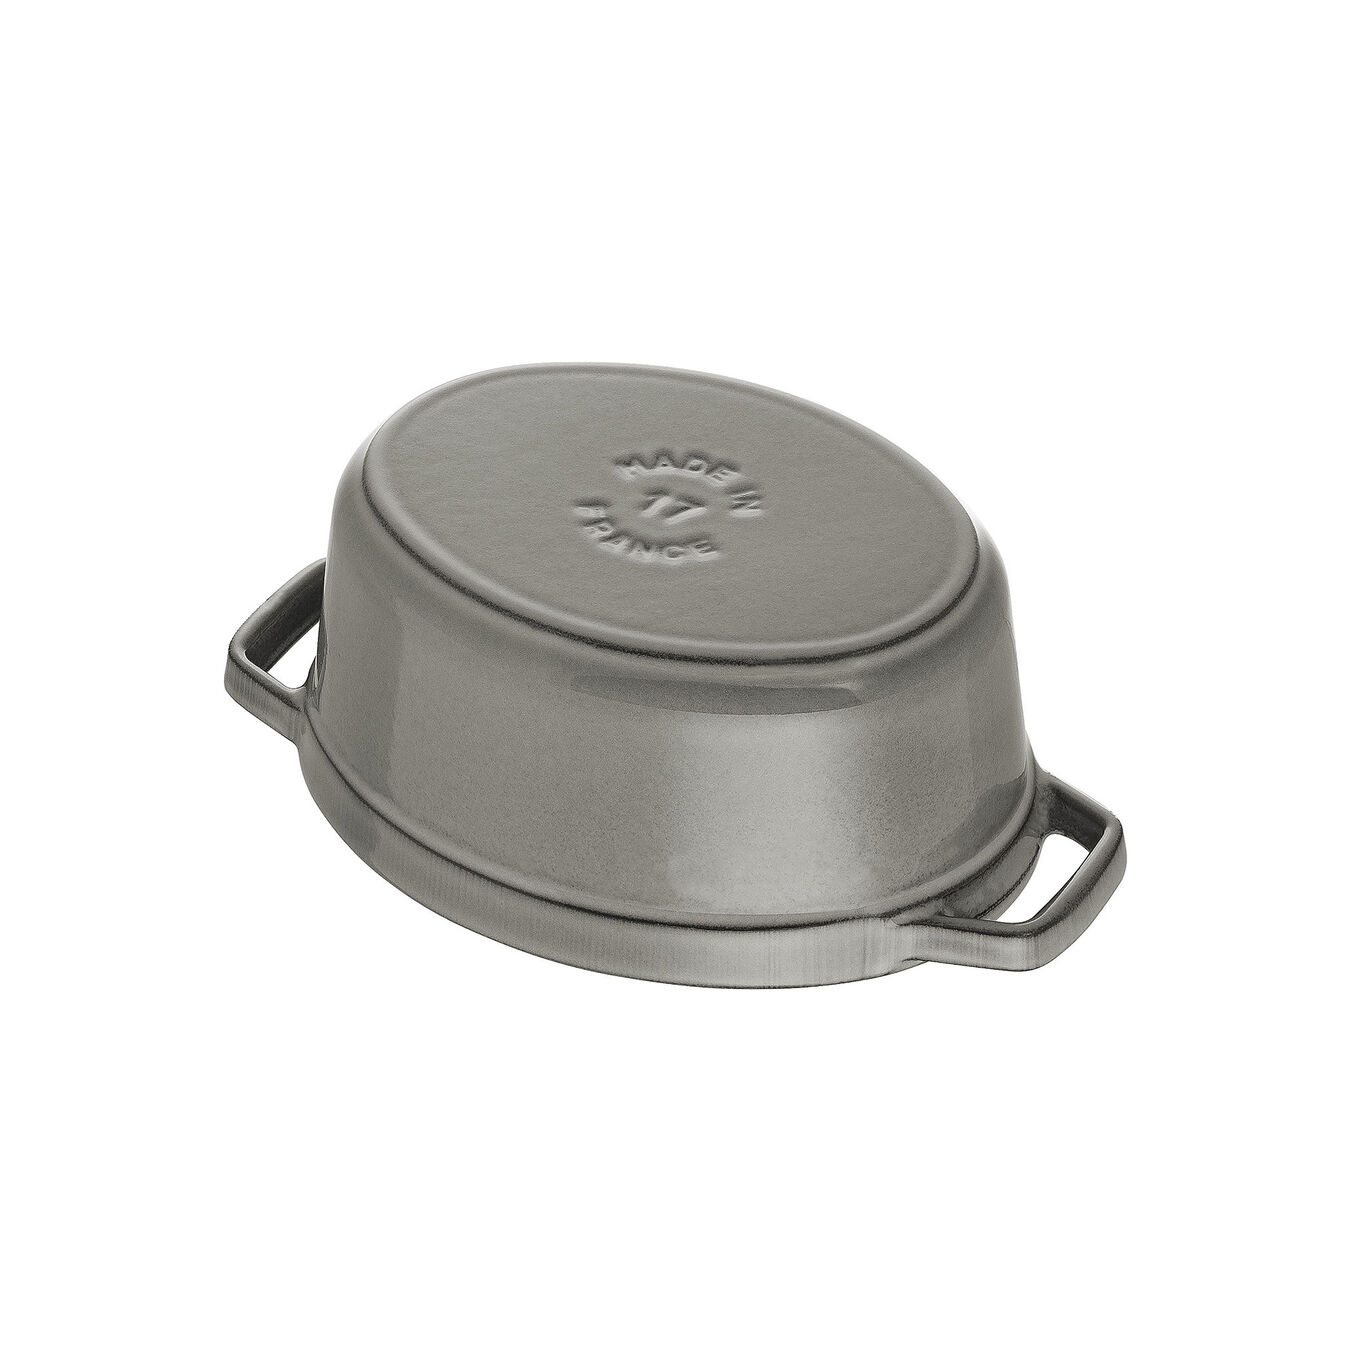 Cocotte 17 cm, oval, Graphit-Grau, Gusseisen,,large 5